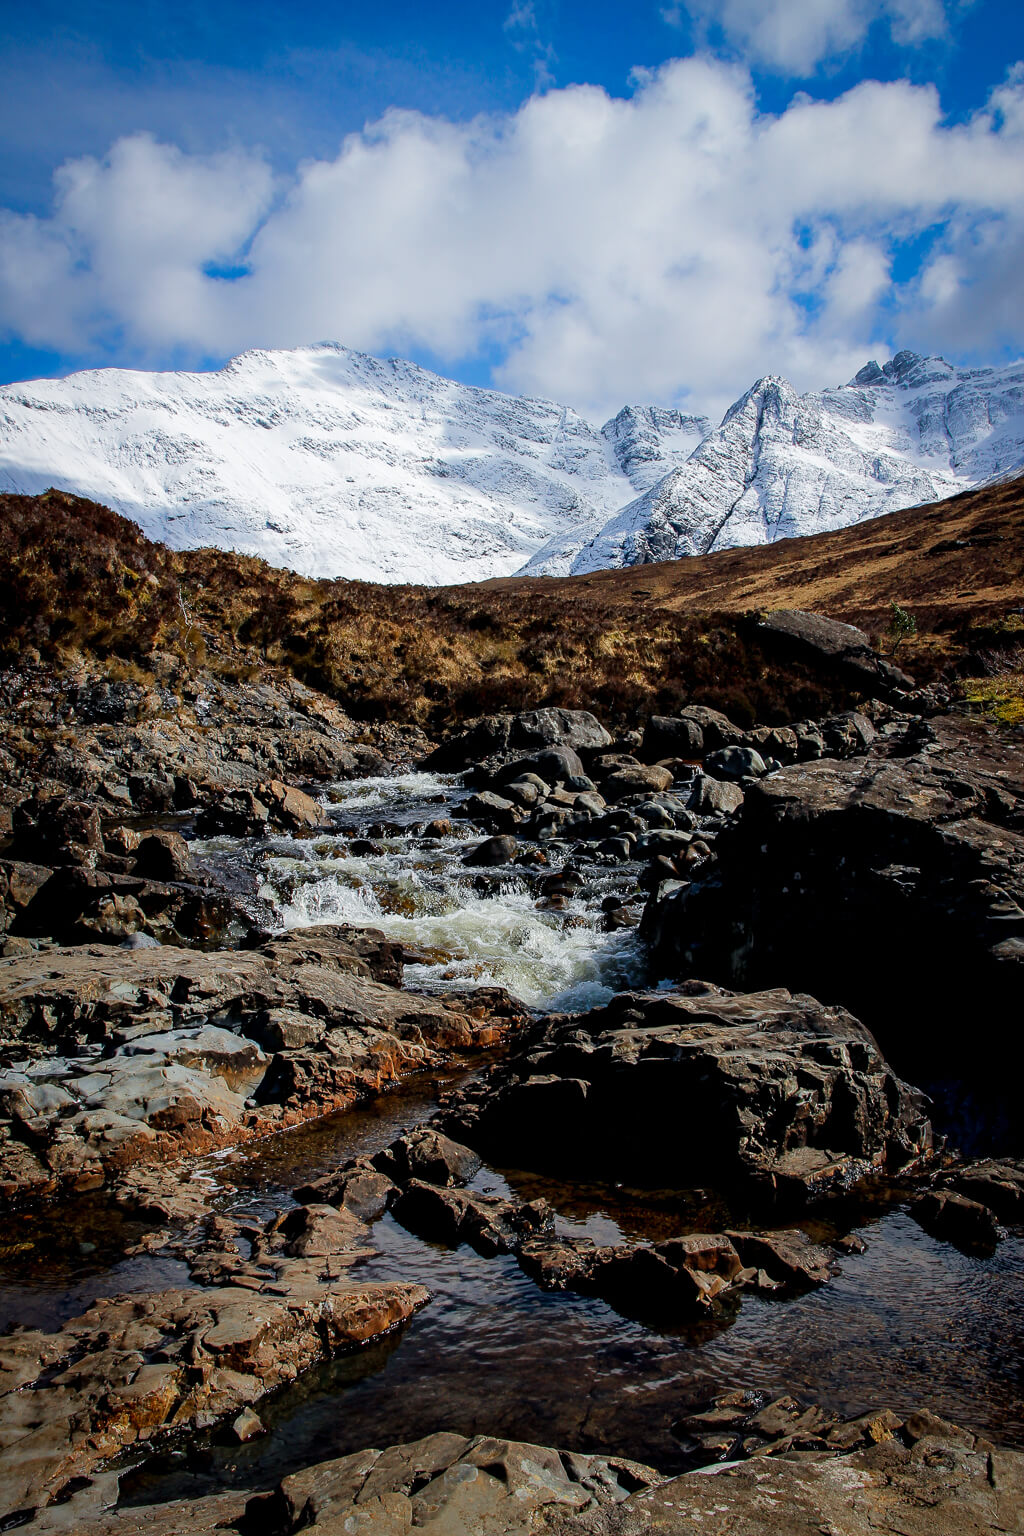 Isle of Skye Schottland Sehenswürdigkeiten Fairy Pools Highlands tantedine